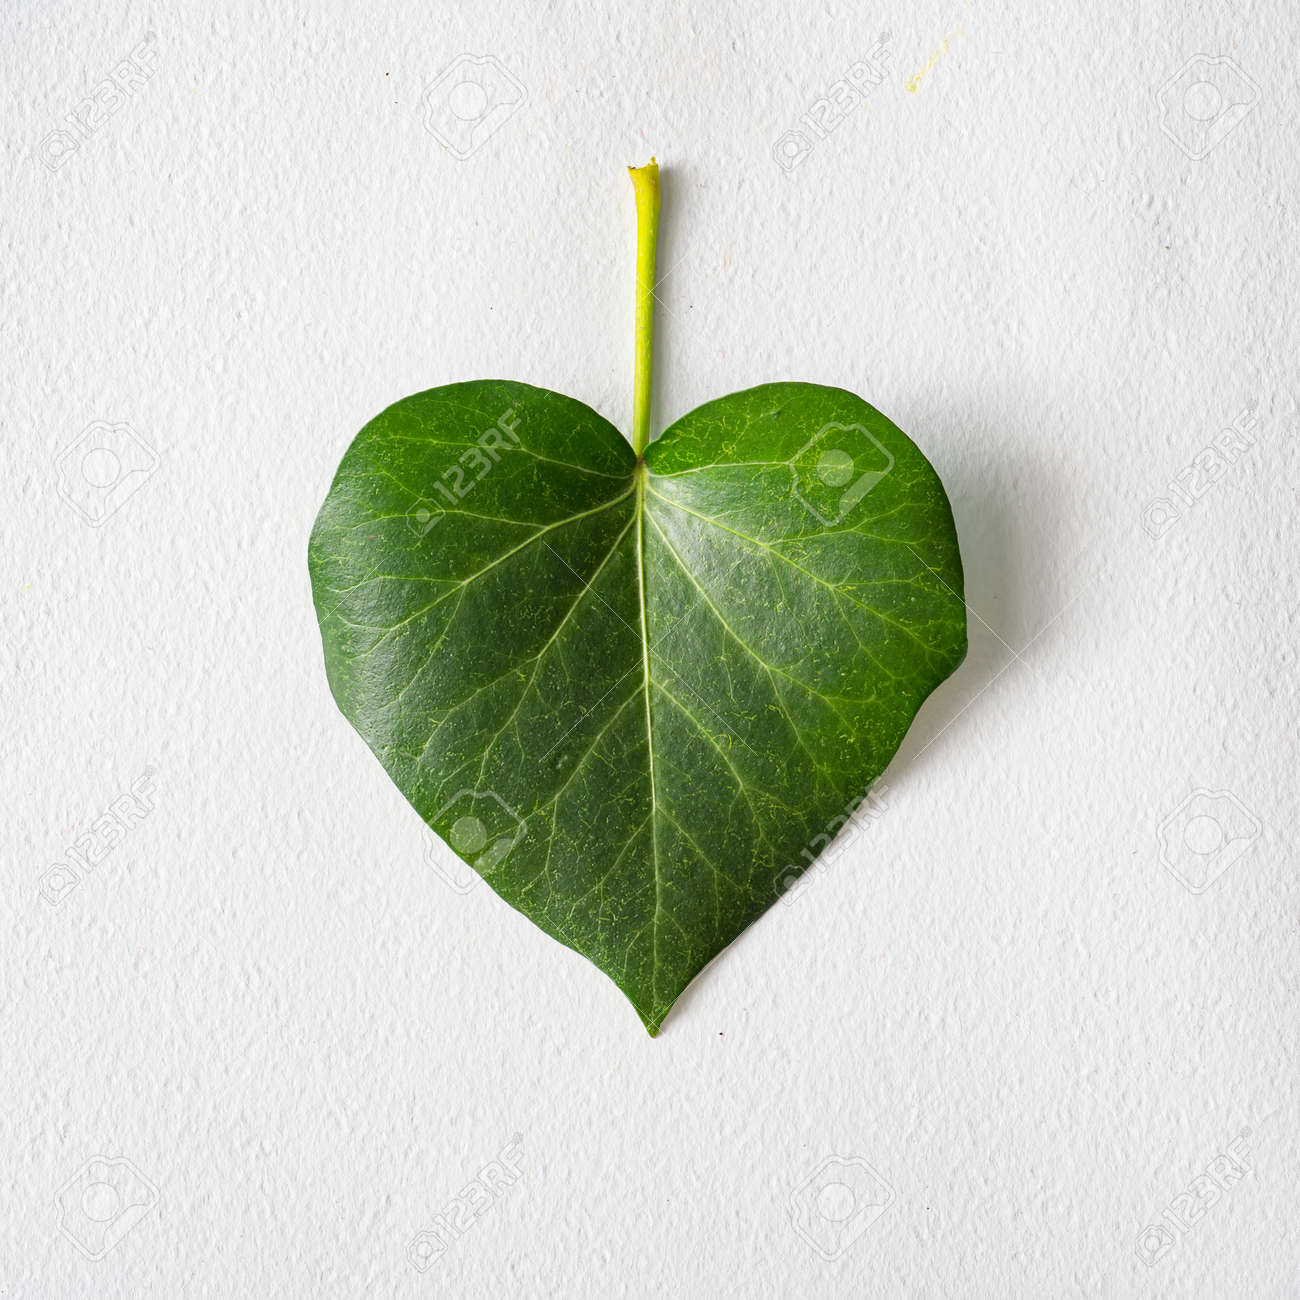 Leaf in shape of a heart. Love valentines or woman's day concept. Natural green leaf on bright background. Flat lay. - 162580140